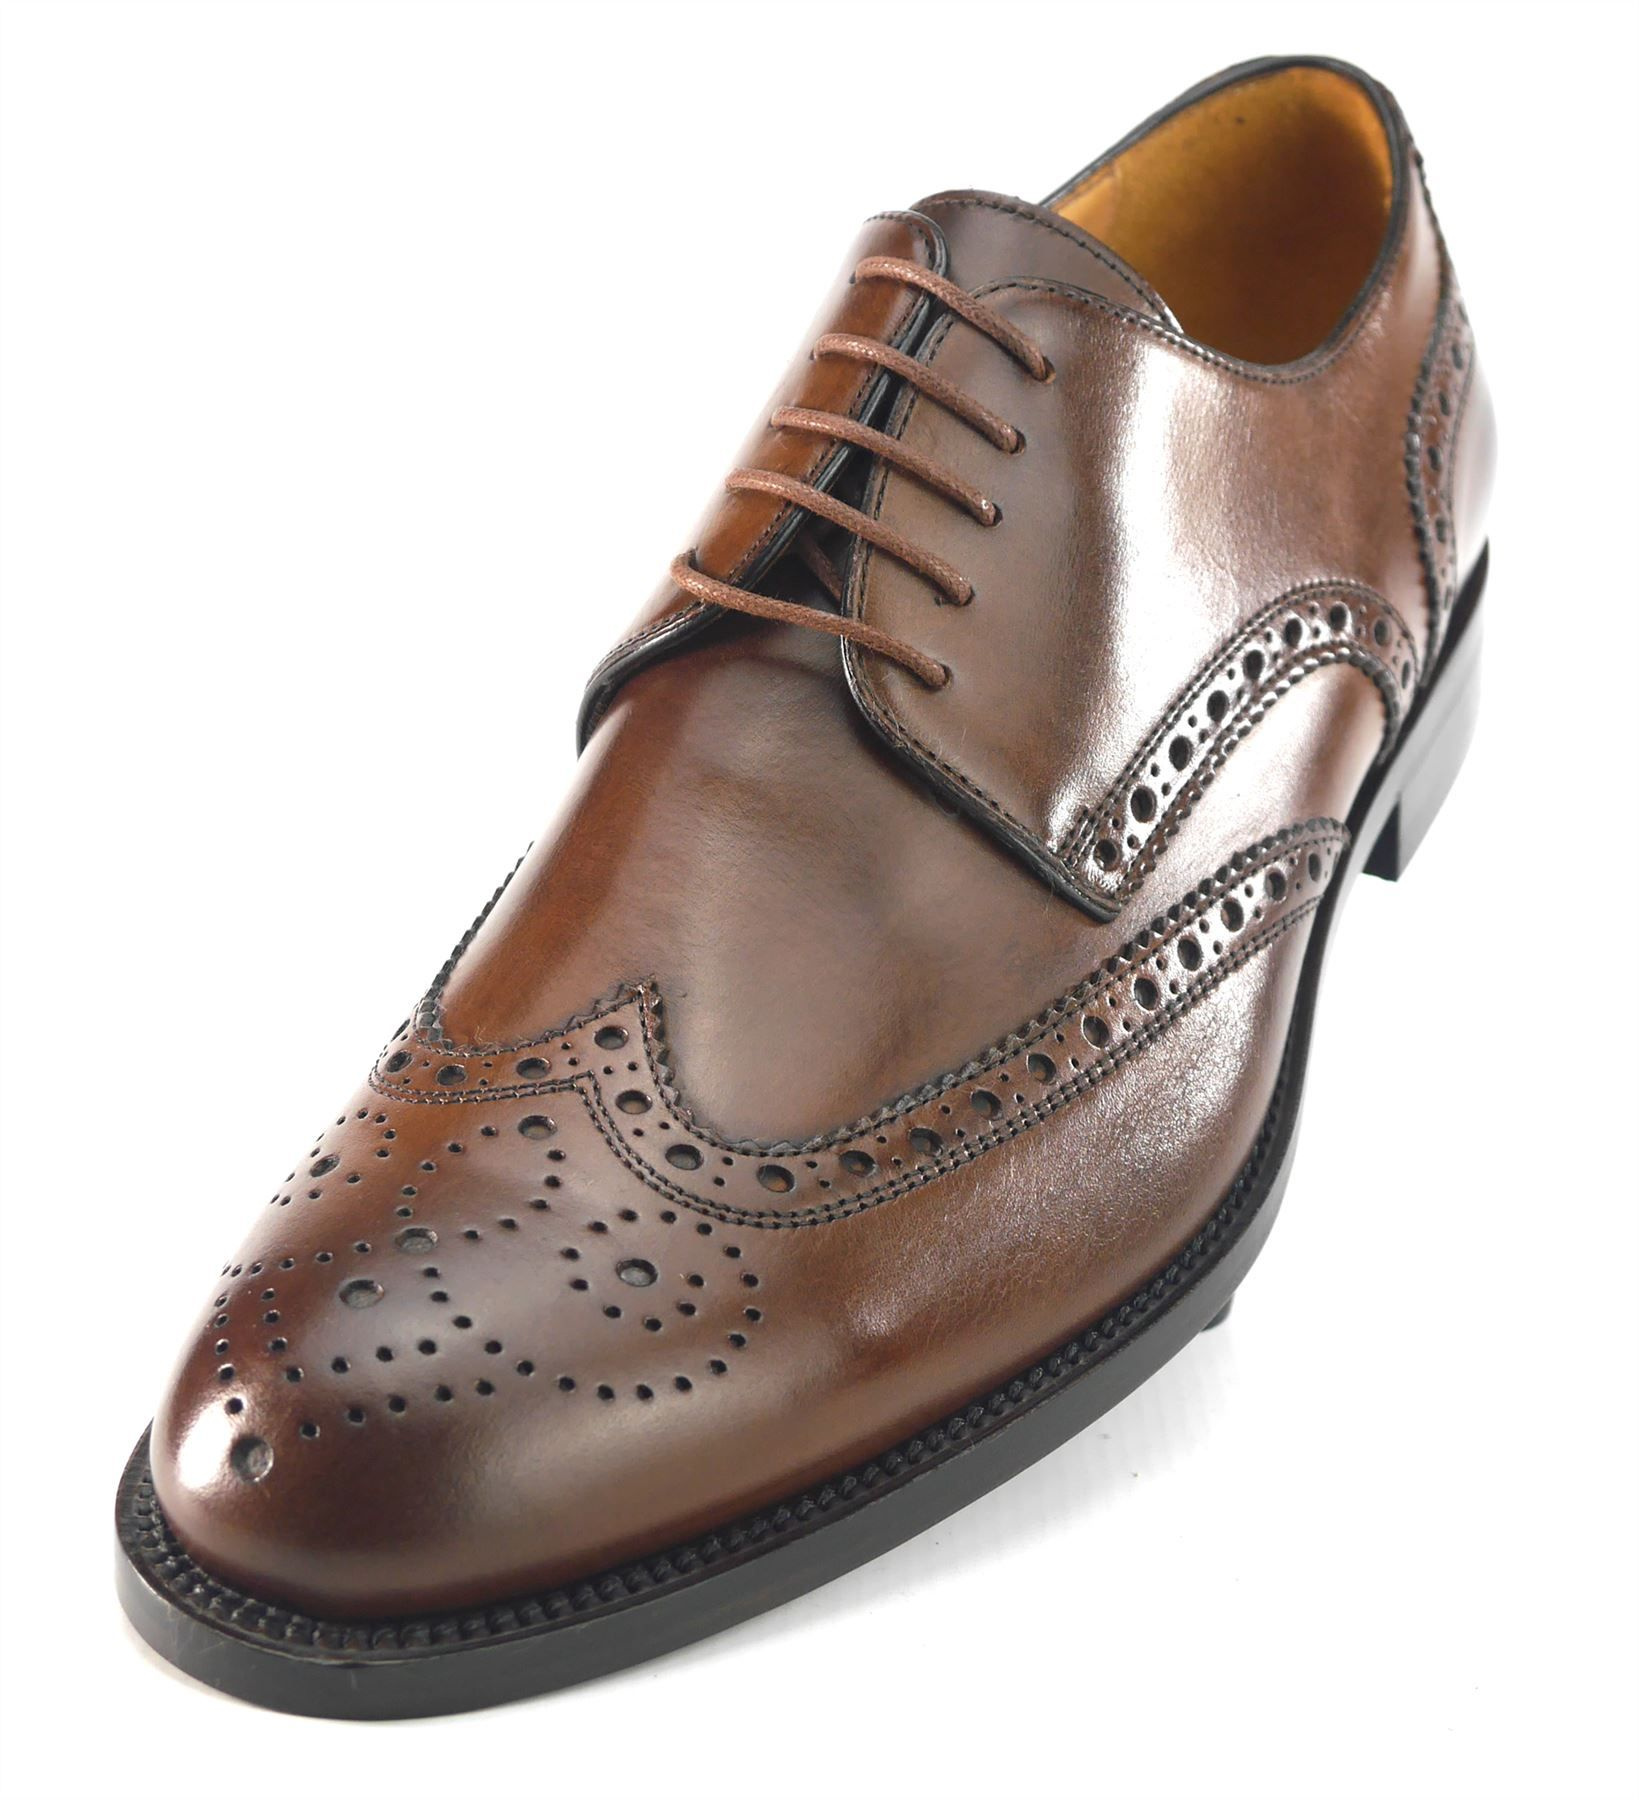 98cd5fa9848 Mercanti Fiorentini Mens Lace Up All Leather Brogue Oxford Cap Brown Shoes